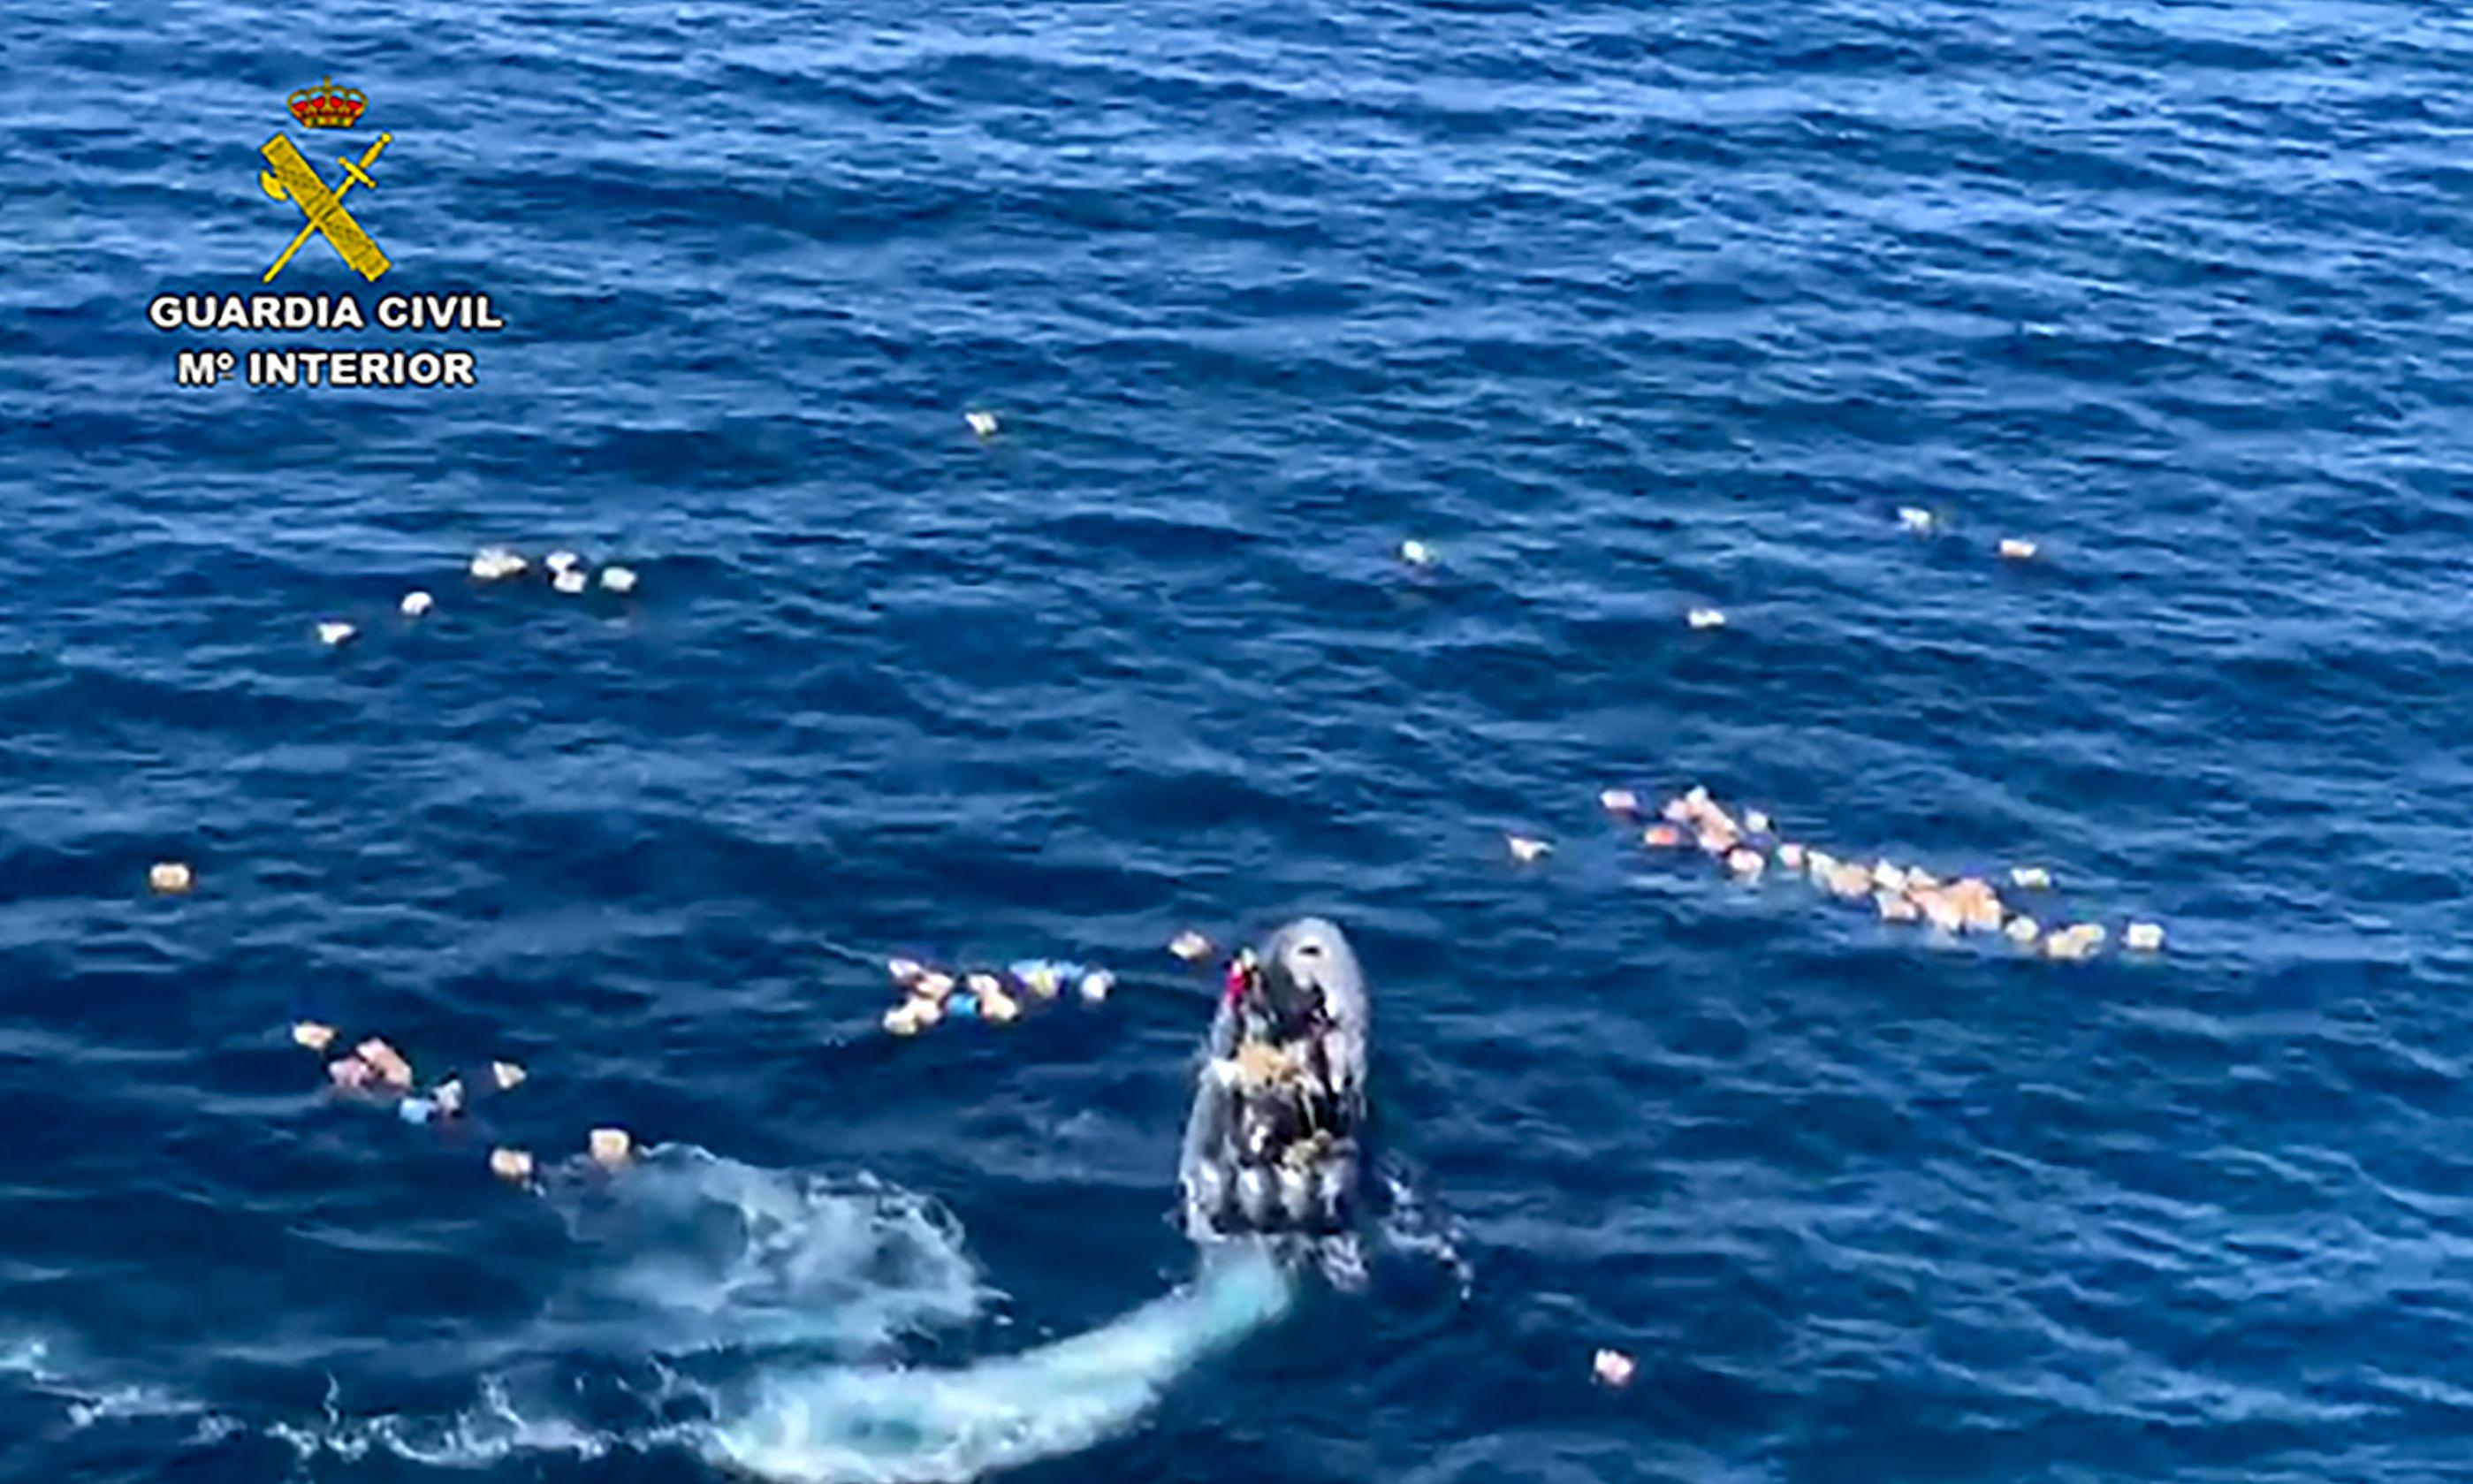 Spanish police plucked from ocean by drugs smugglers they were chasing